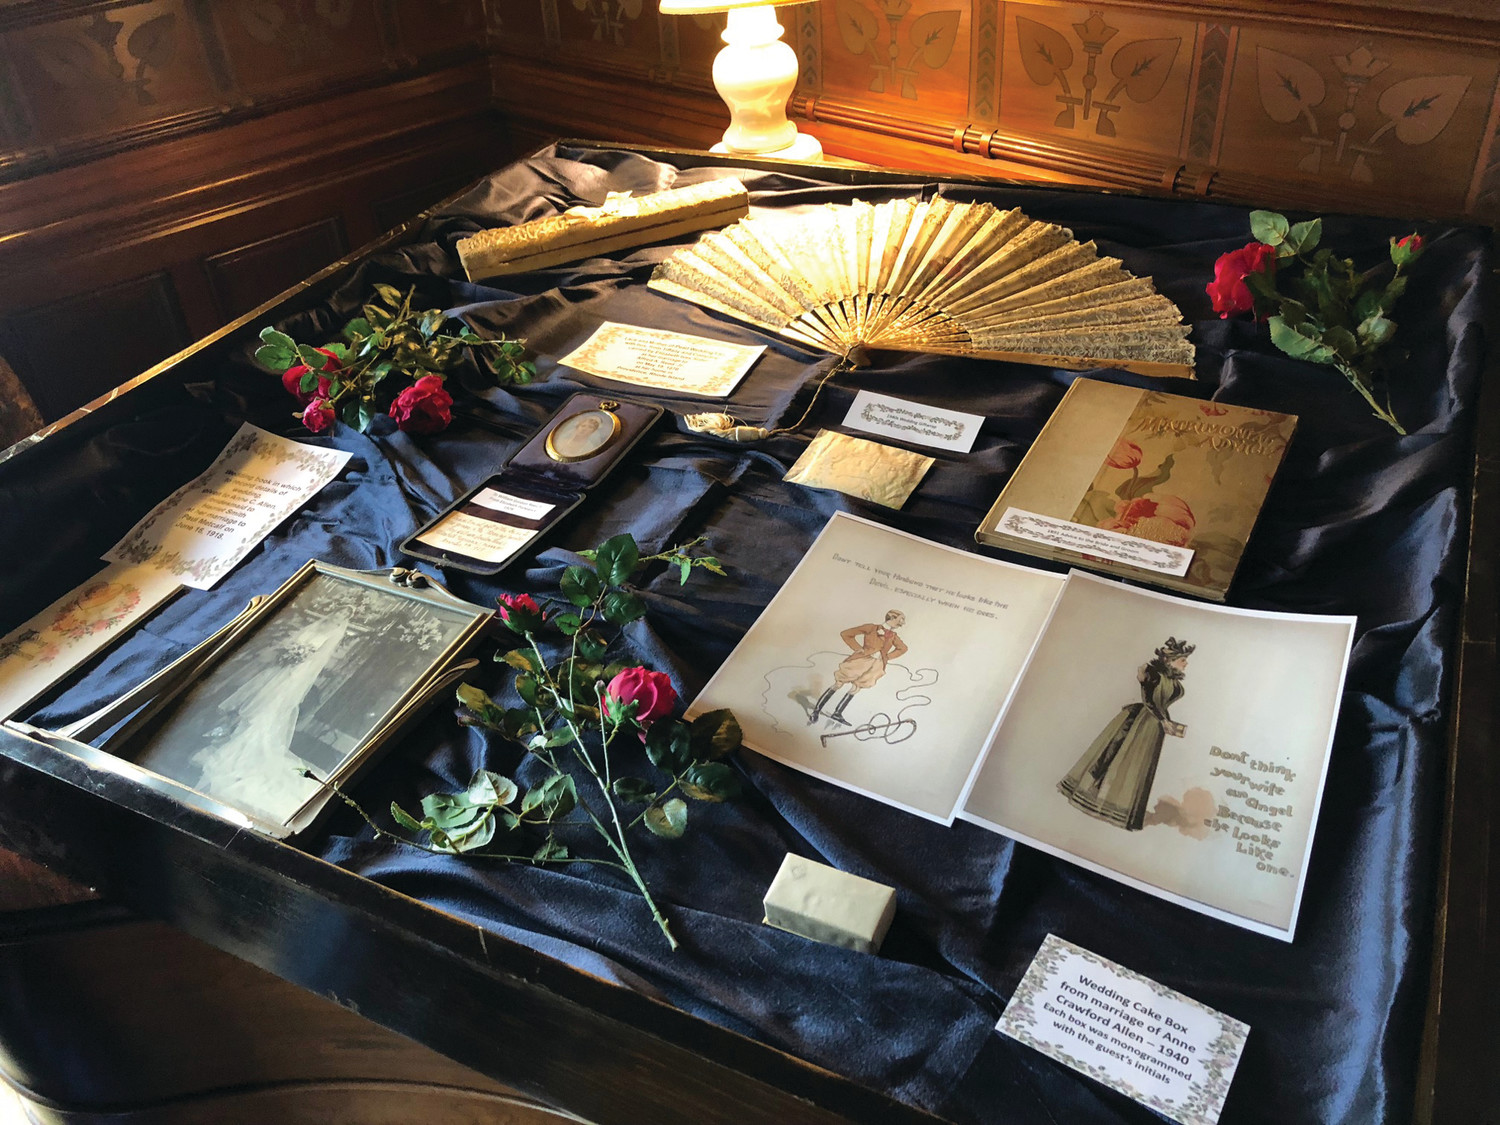 PARTY FAVORS: Included in this display is a Victorian-era fan and a monogrammed silver-ingrained party favor box, which Dietrich-Holst found still had a piece of fruit cake inside. She did not sample to see if the myth of its longevity held true.